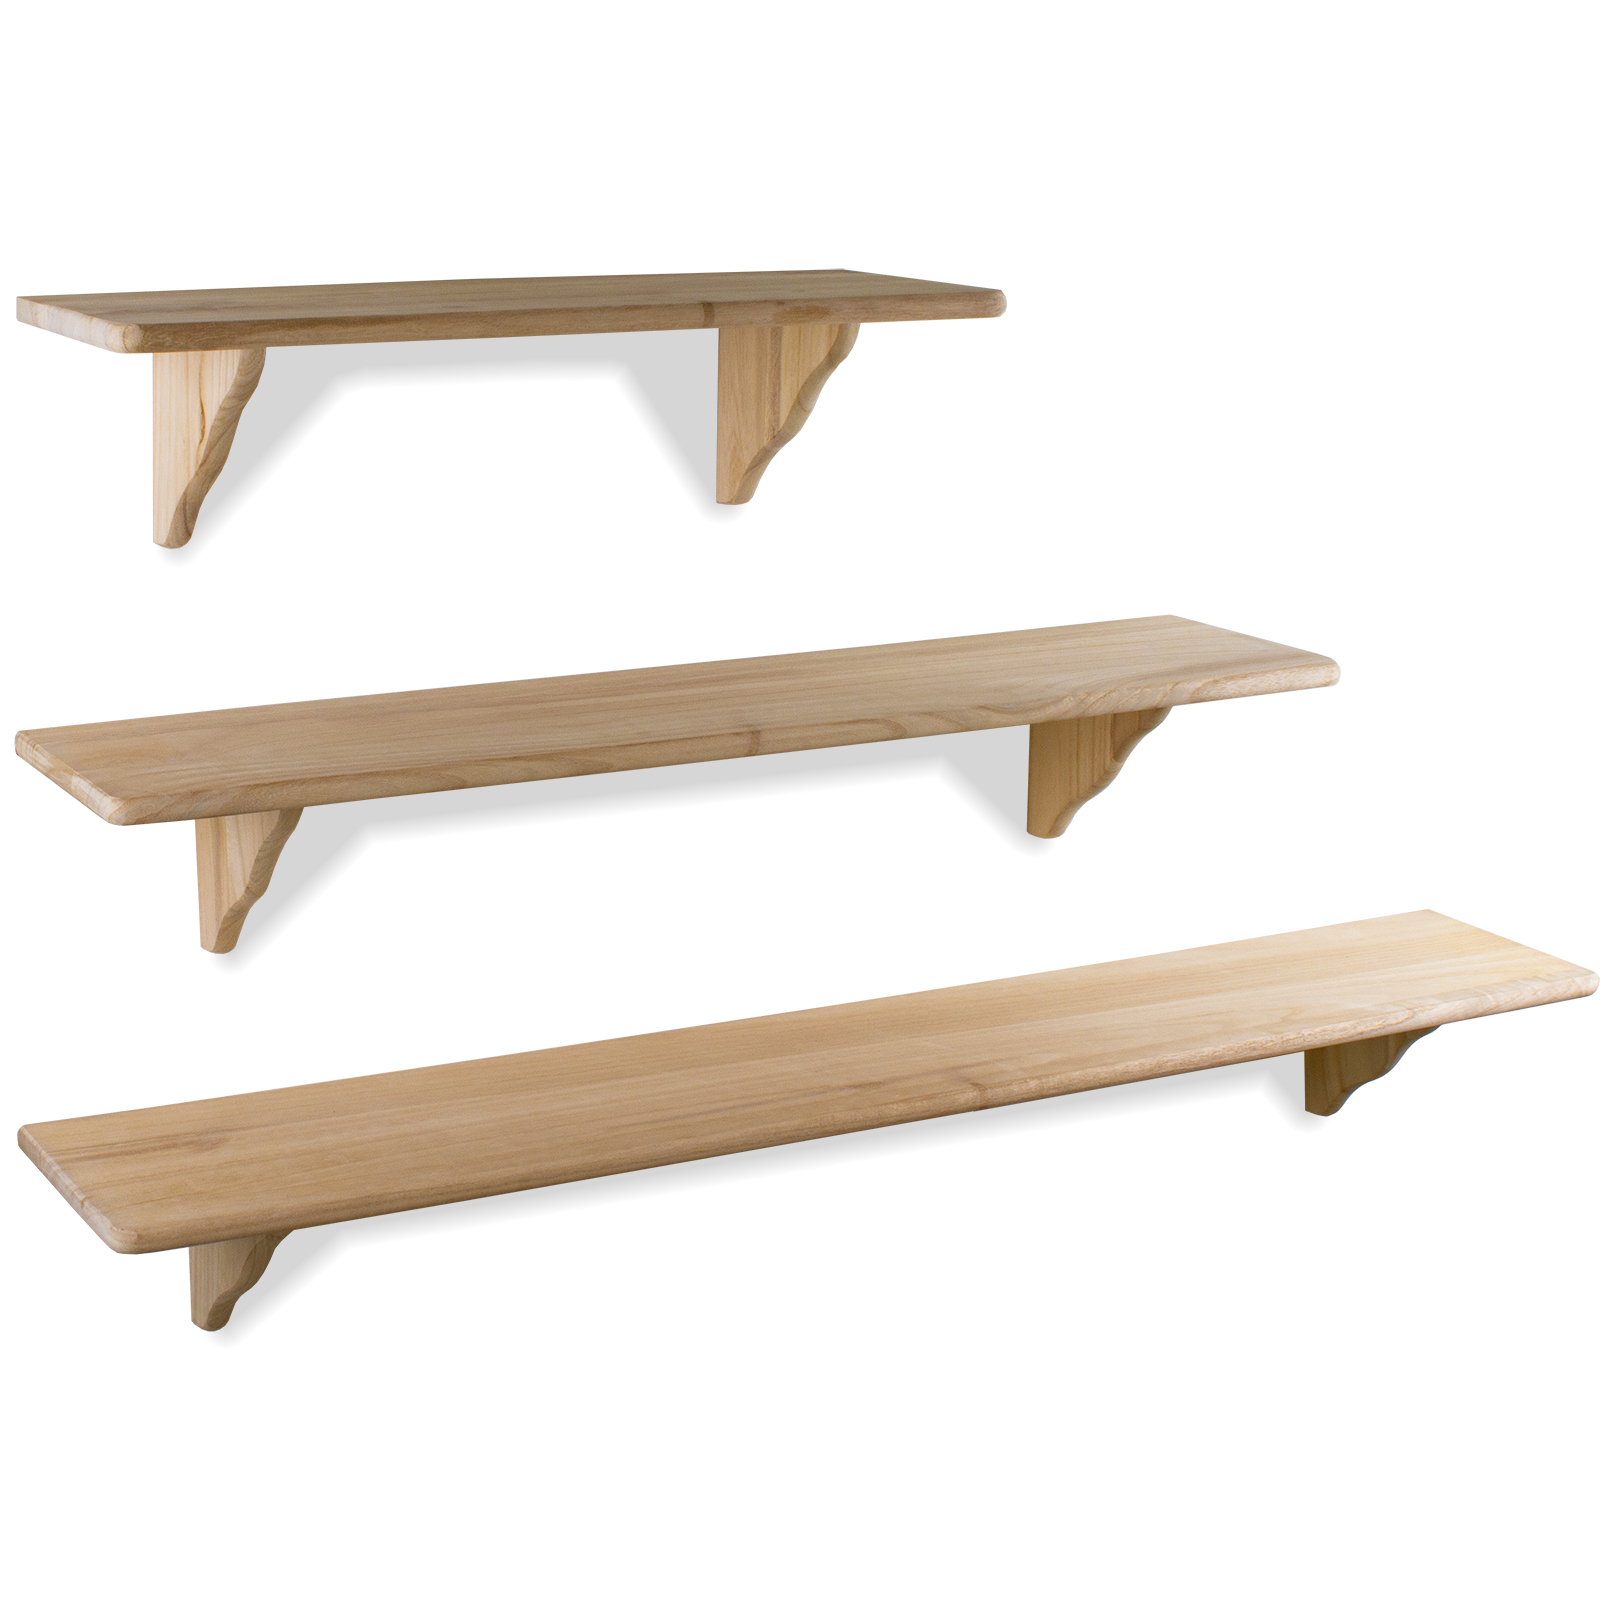 Marko Storage Solutions 16mm Natural Wood Wooden Shelf Storage Wall Mounted Pine Floating Shelves Fitting Kit 58.5cm x 19cm